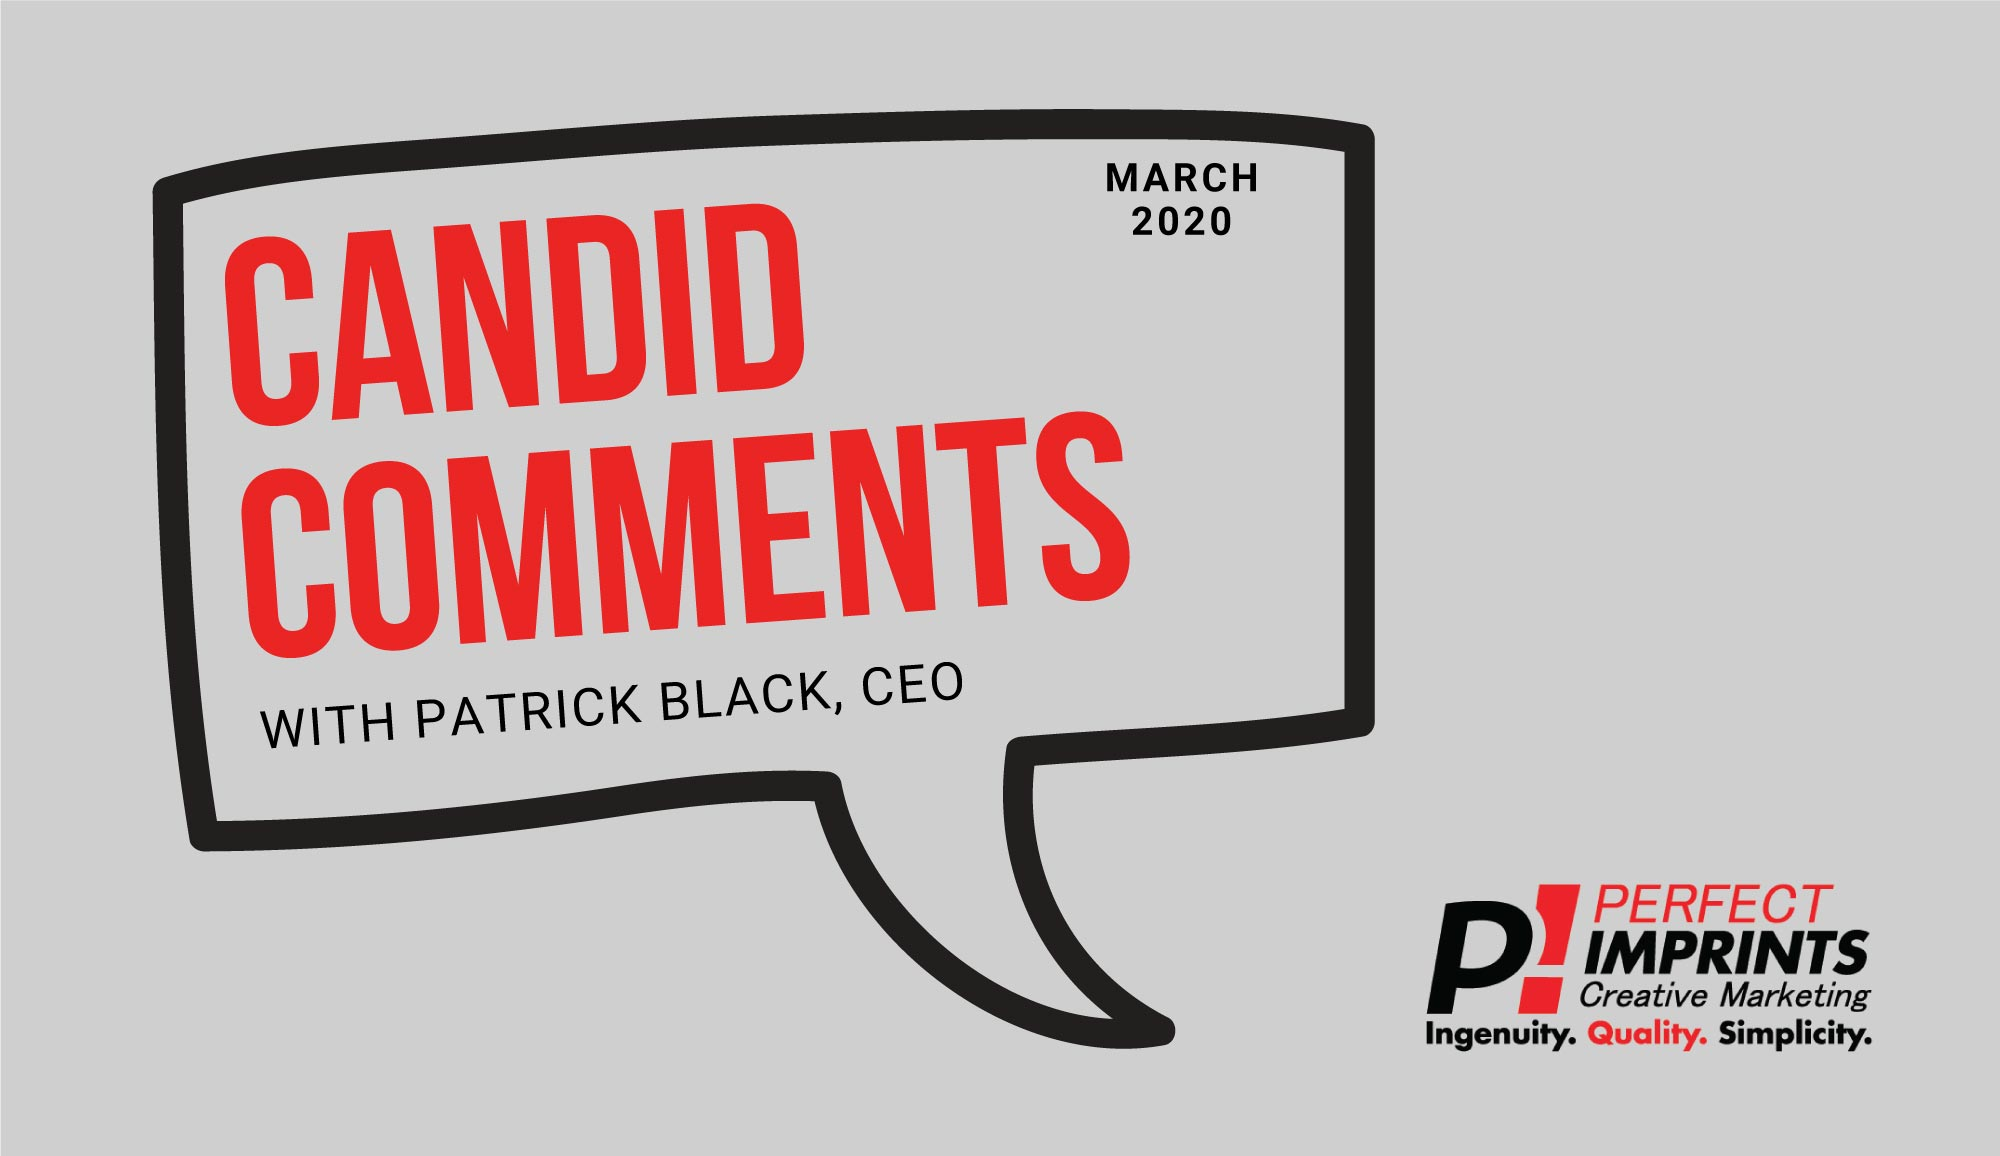 Candid Comments – March 2020